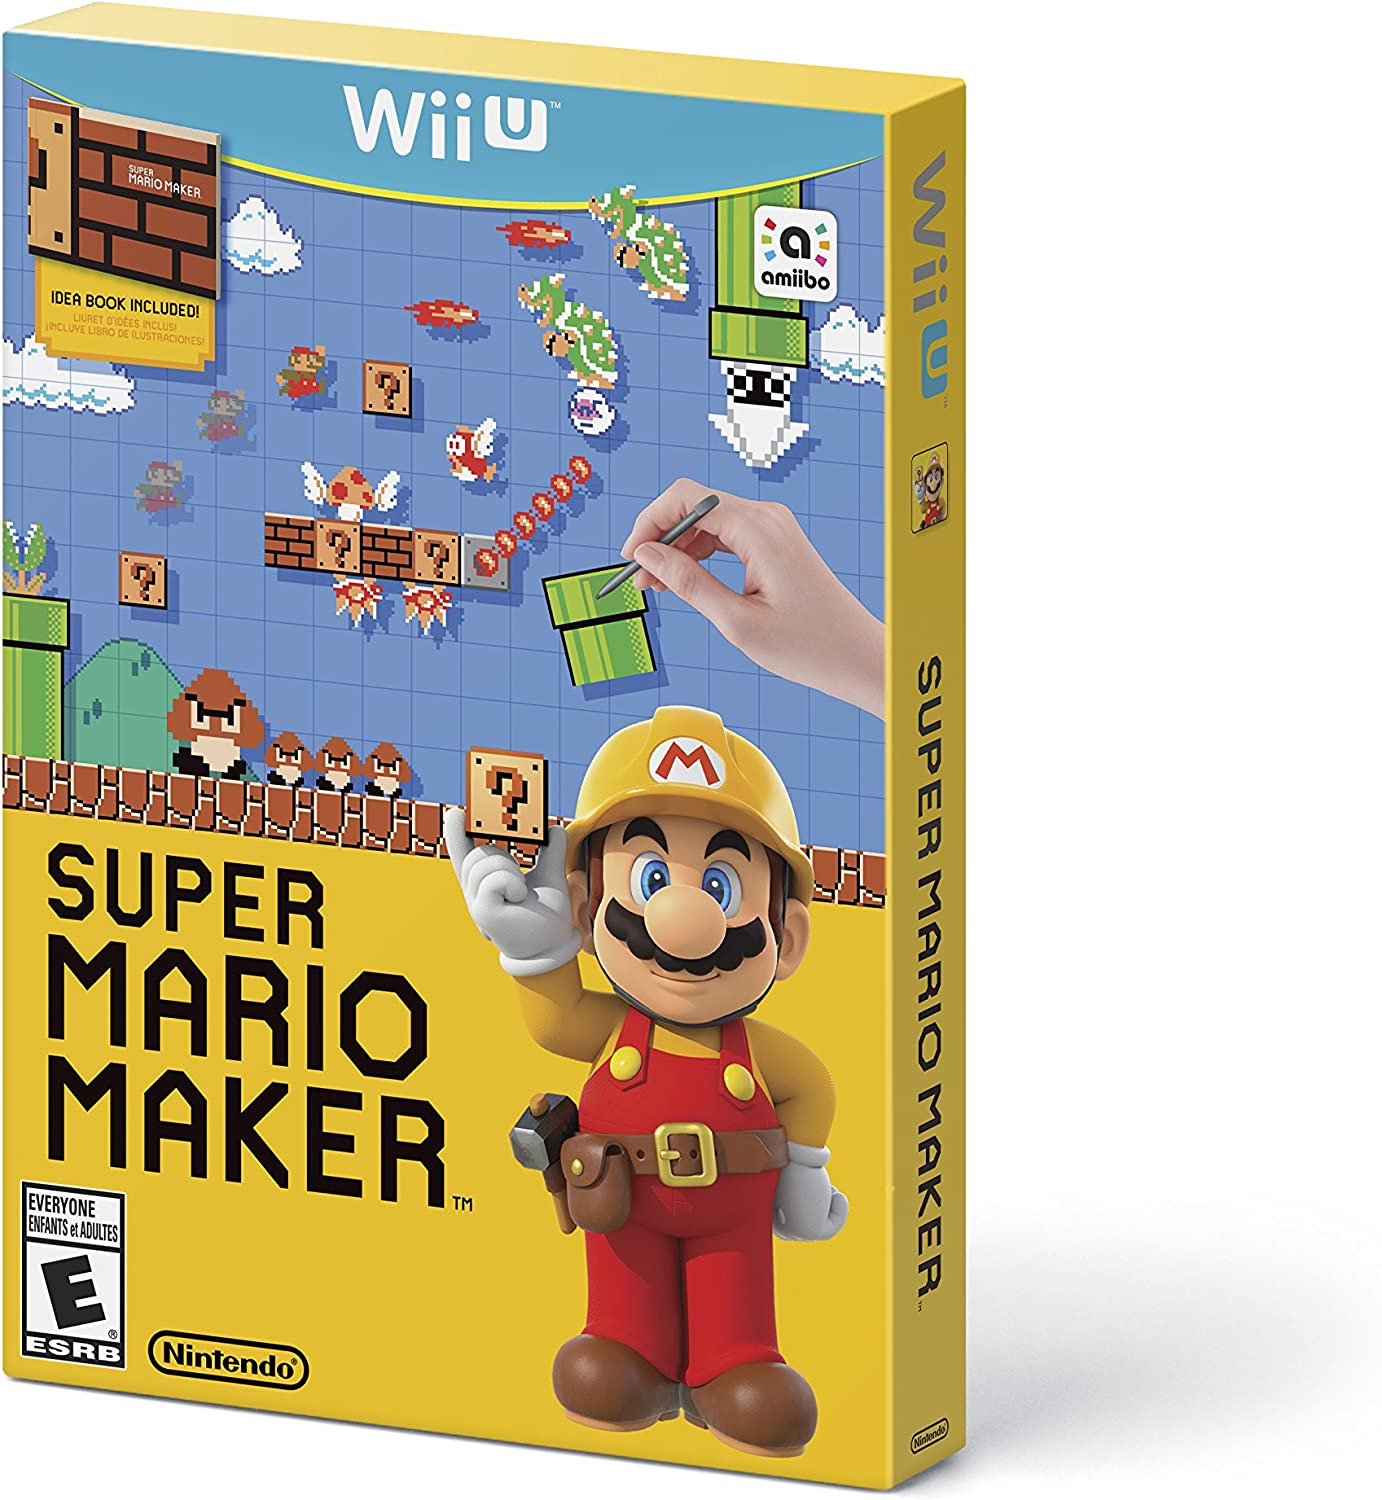 d61f0d48f2 Amazon.com: Super Mario Maker - Nintendo Wii U: Nintendo of America: Video  Games